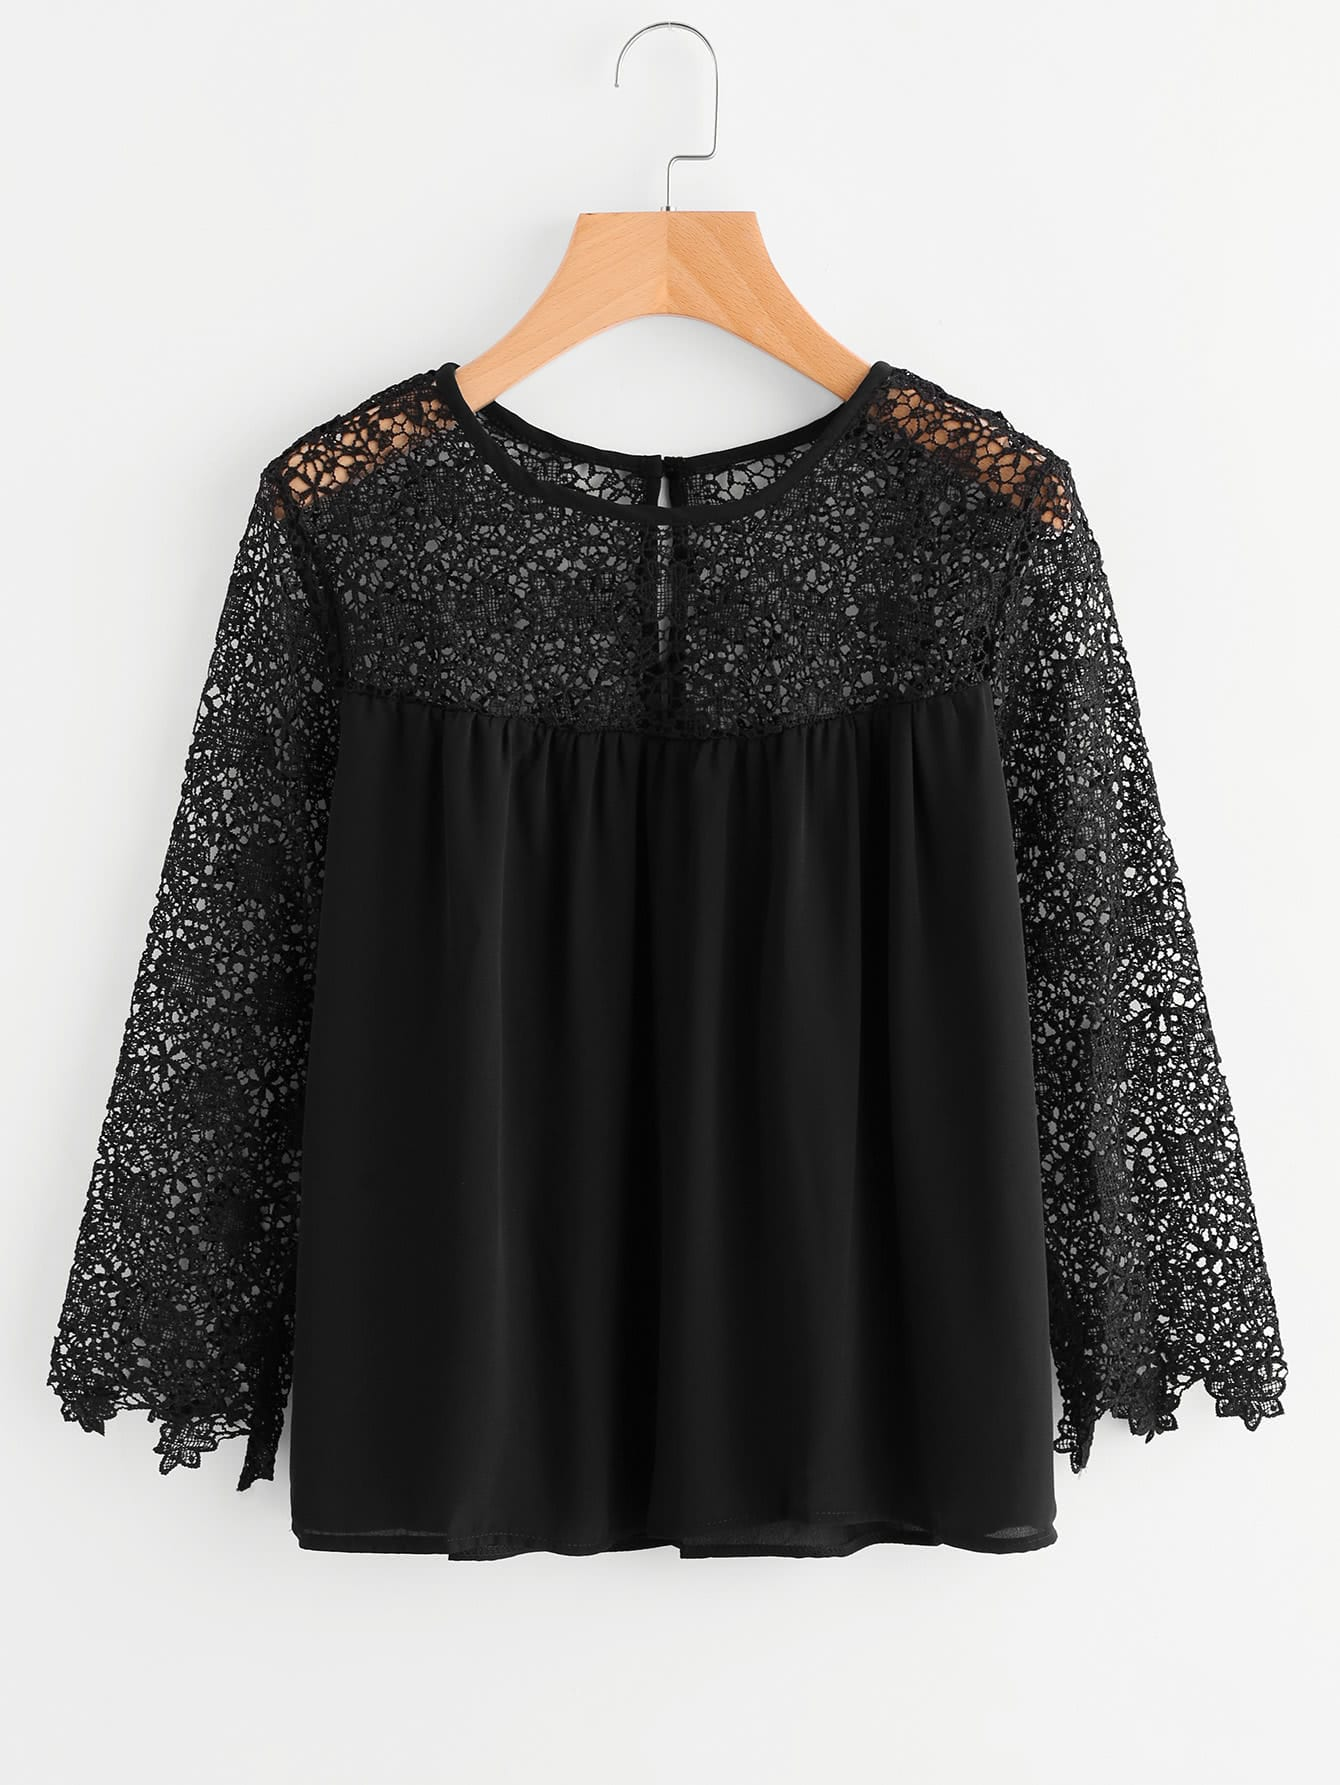 Hollow Out Crochet Paneled Blouse hollow out crochet panel blouse